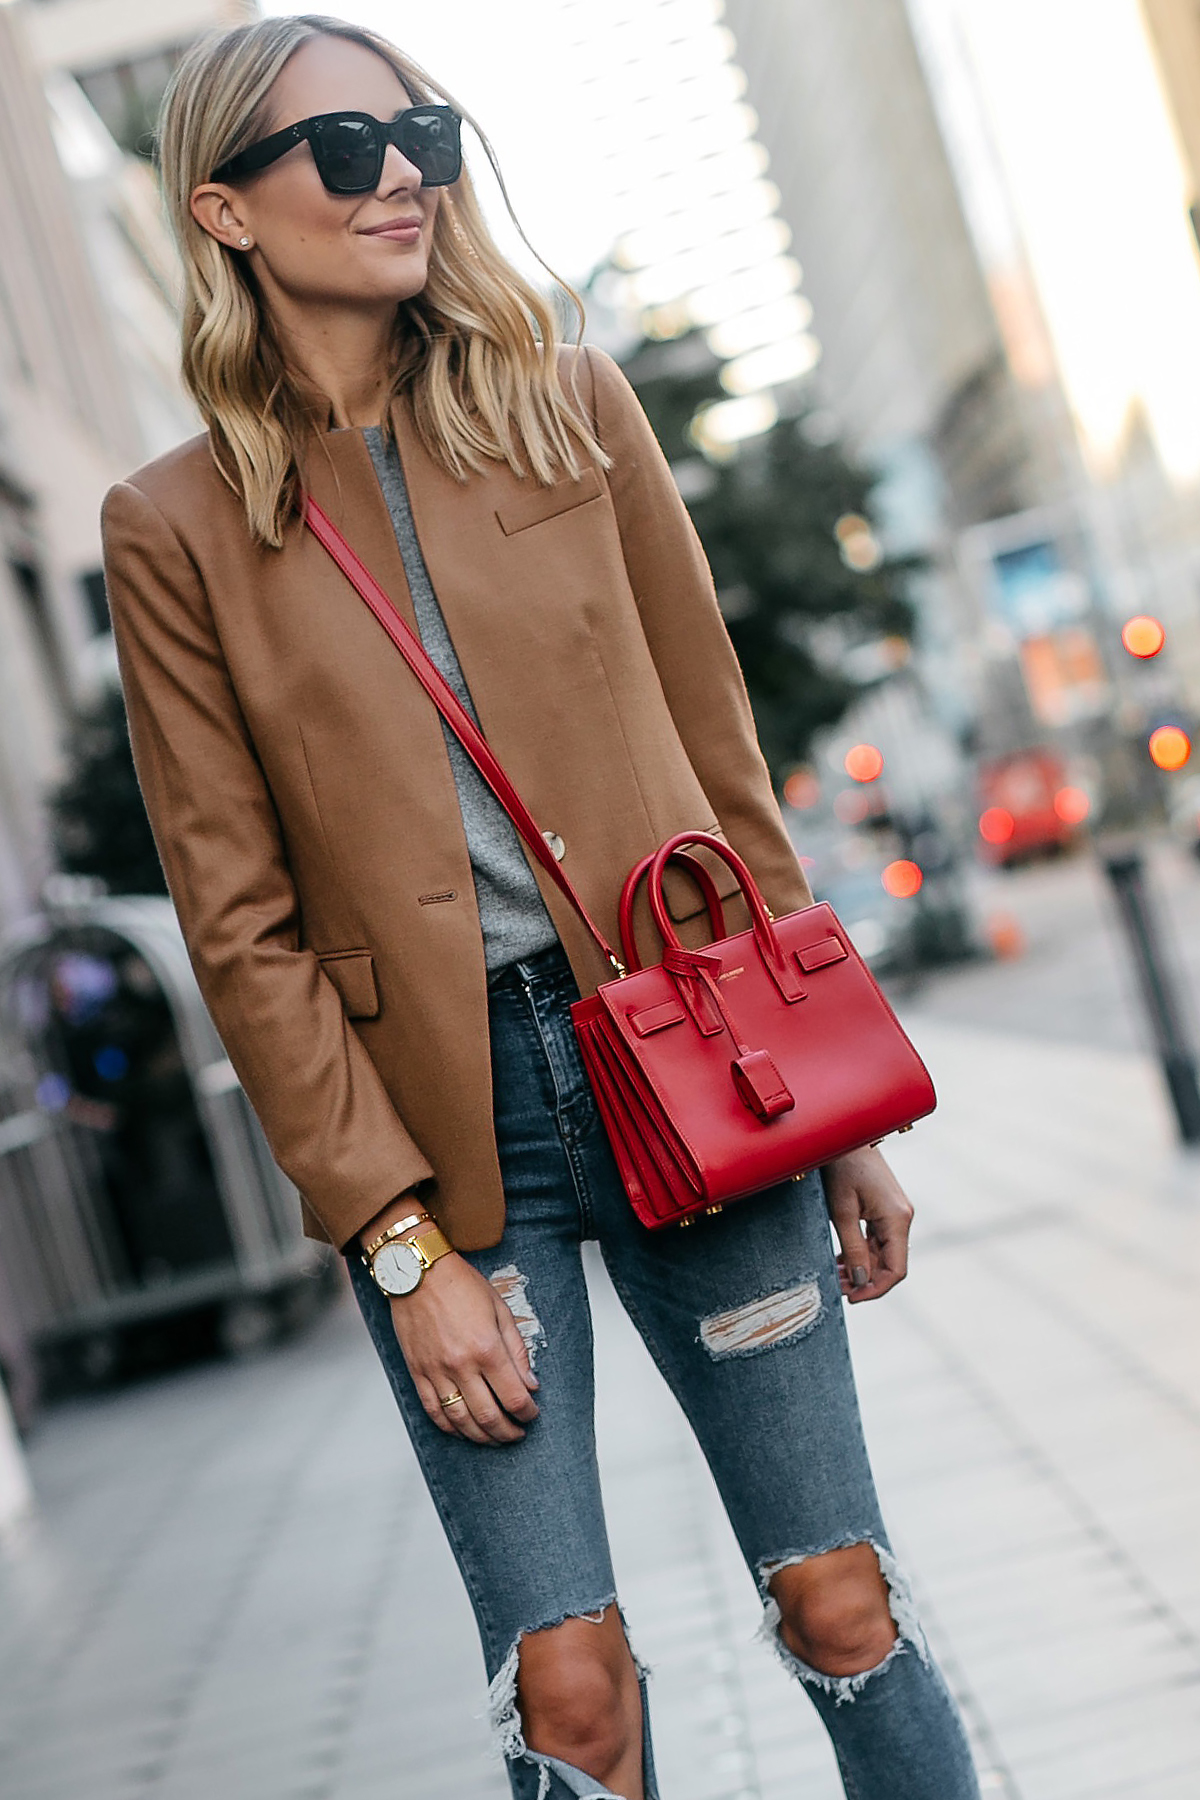 Blonde Woman Wearing Jcrew Camel Blazer Grey Sweater Ripped Denim Jeans Saint Laurent Sac De Jour Nano Red Bag Fashion Jackson Dallas Blogger Fashion Blogger Street Style